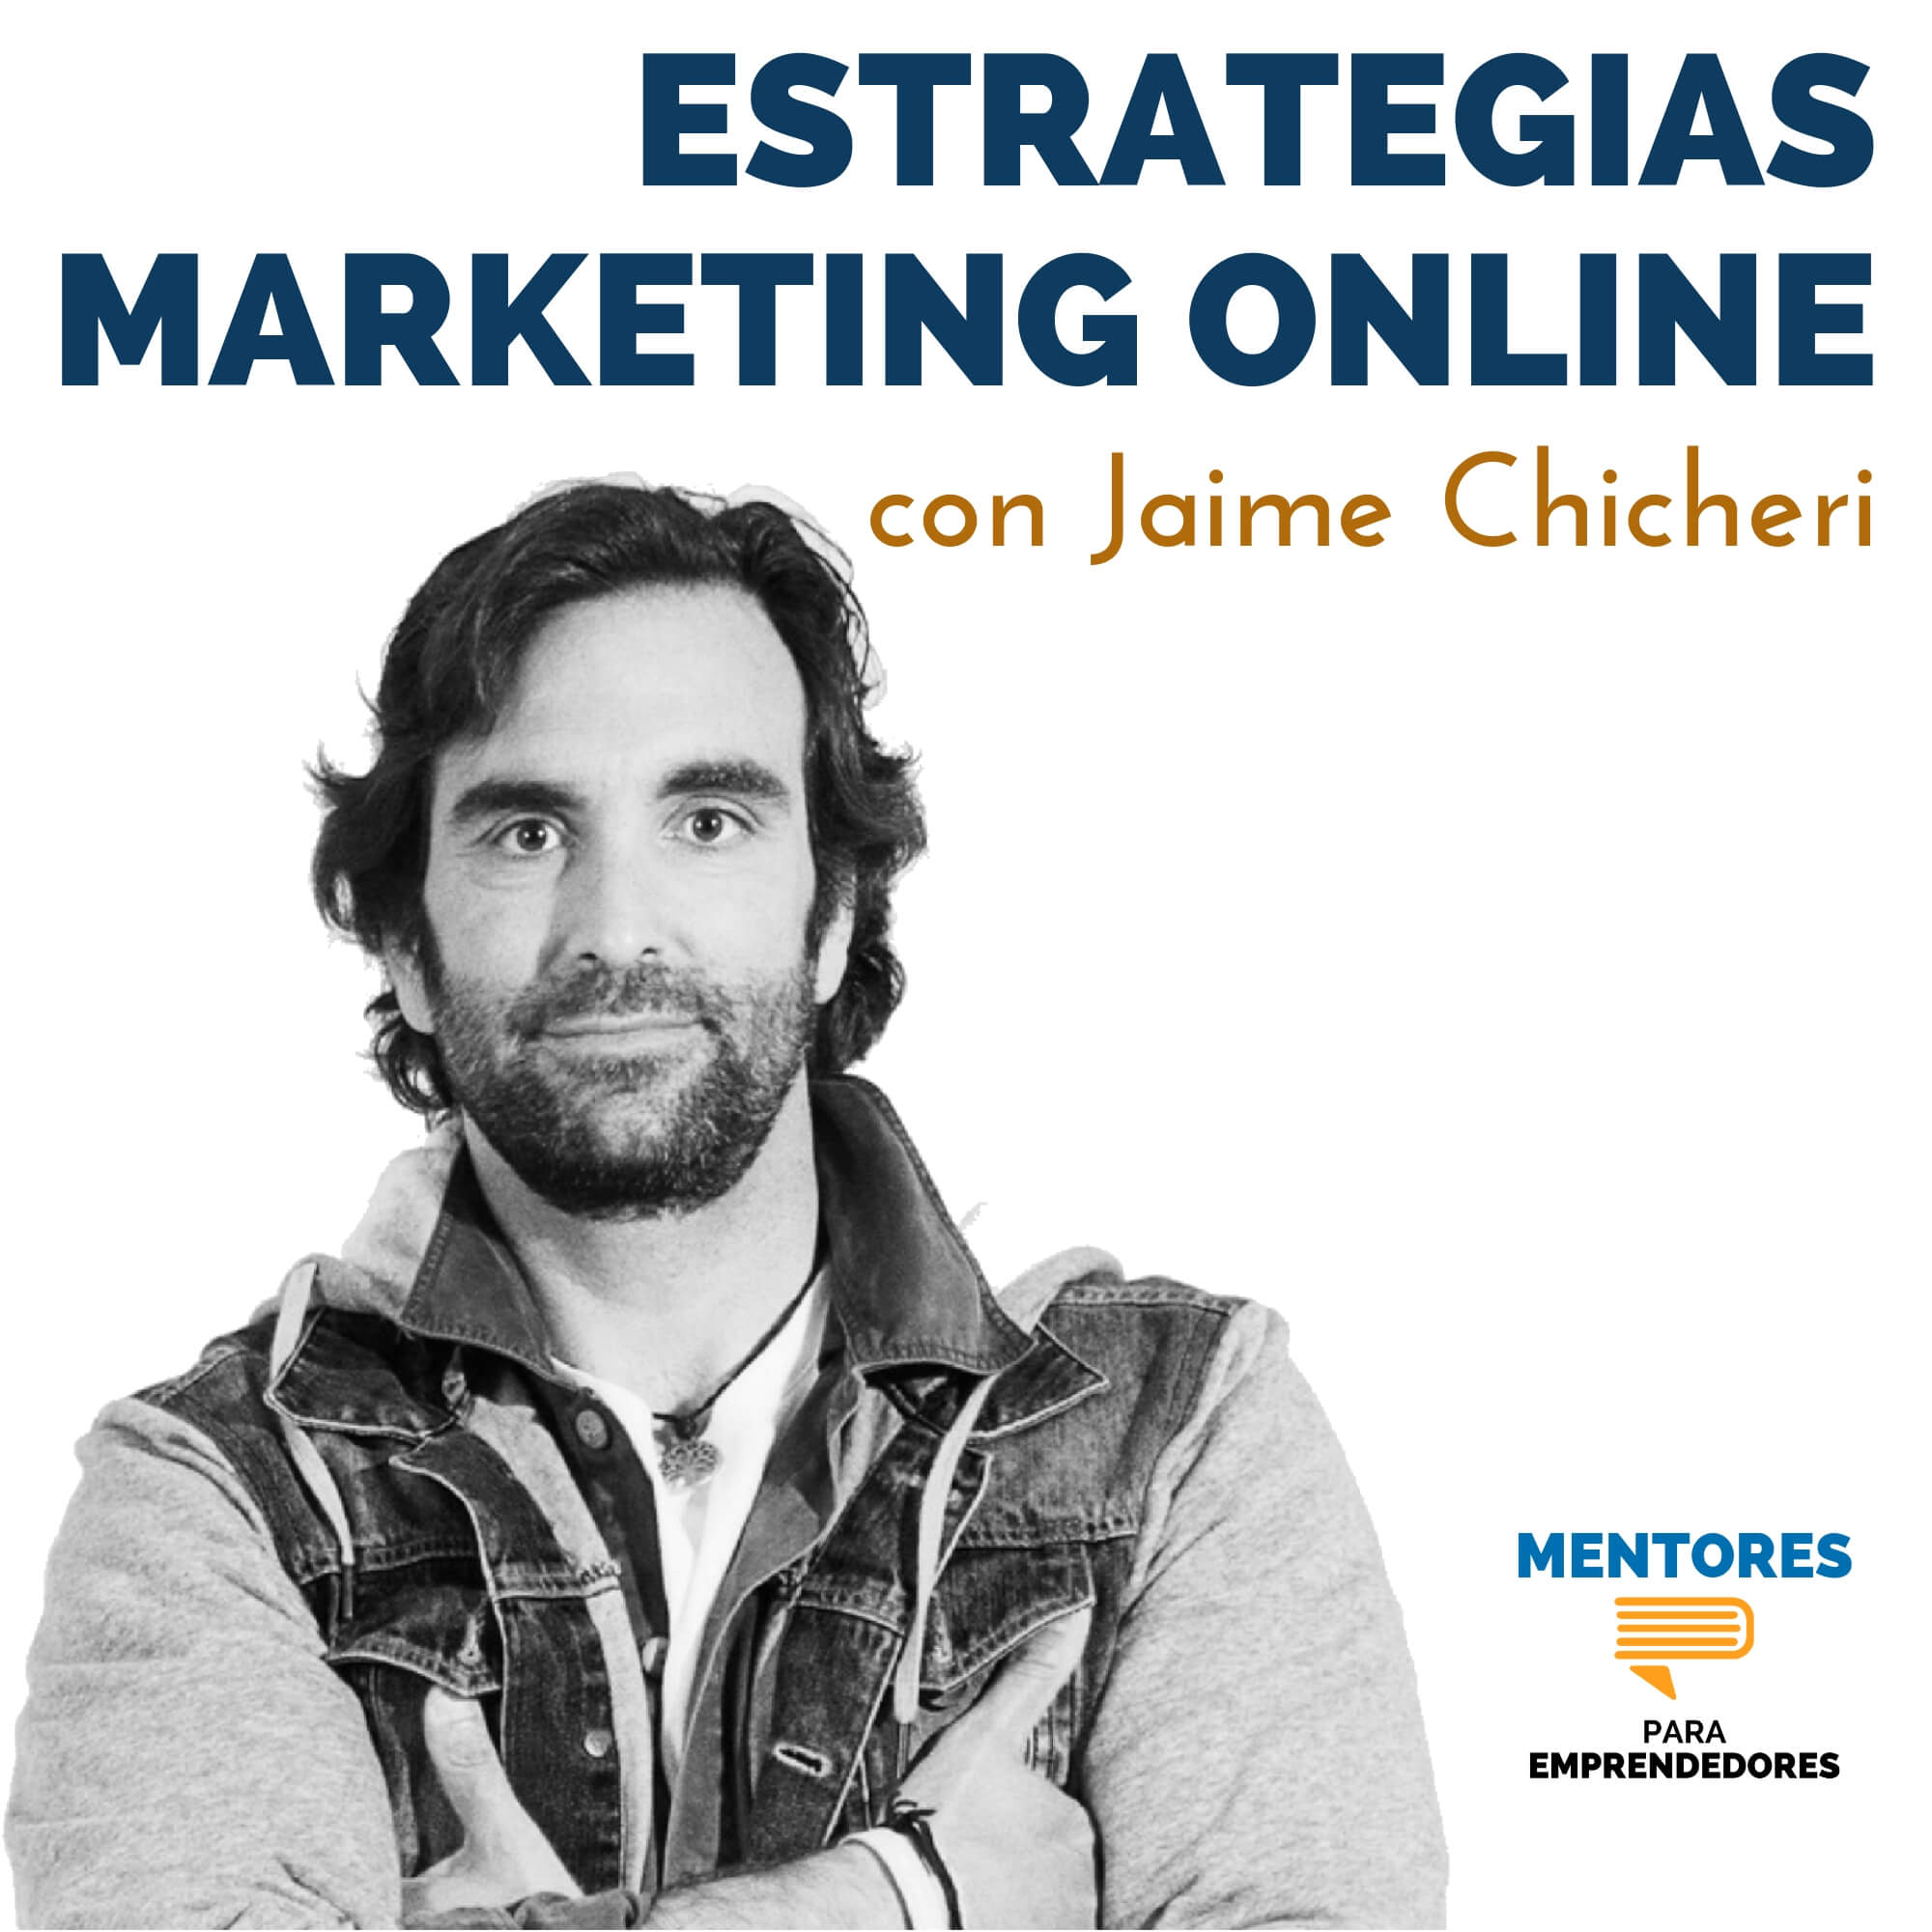 Estrategias exitosas de marketing online, con Jaime Chicheri - MENTORES